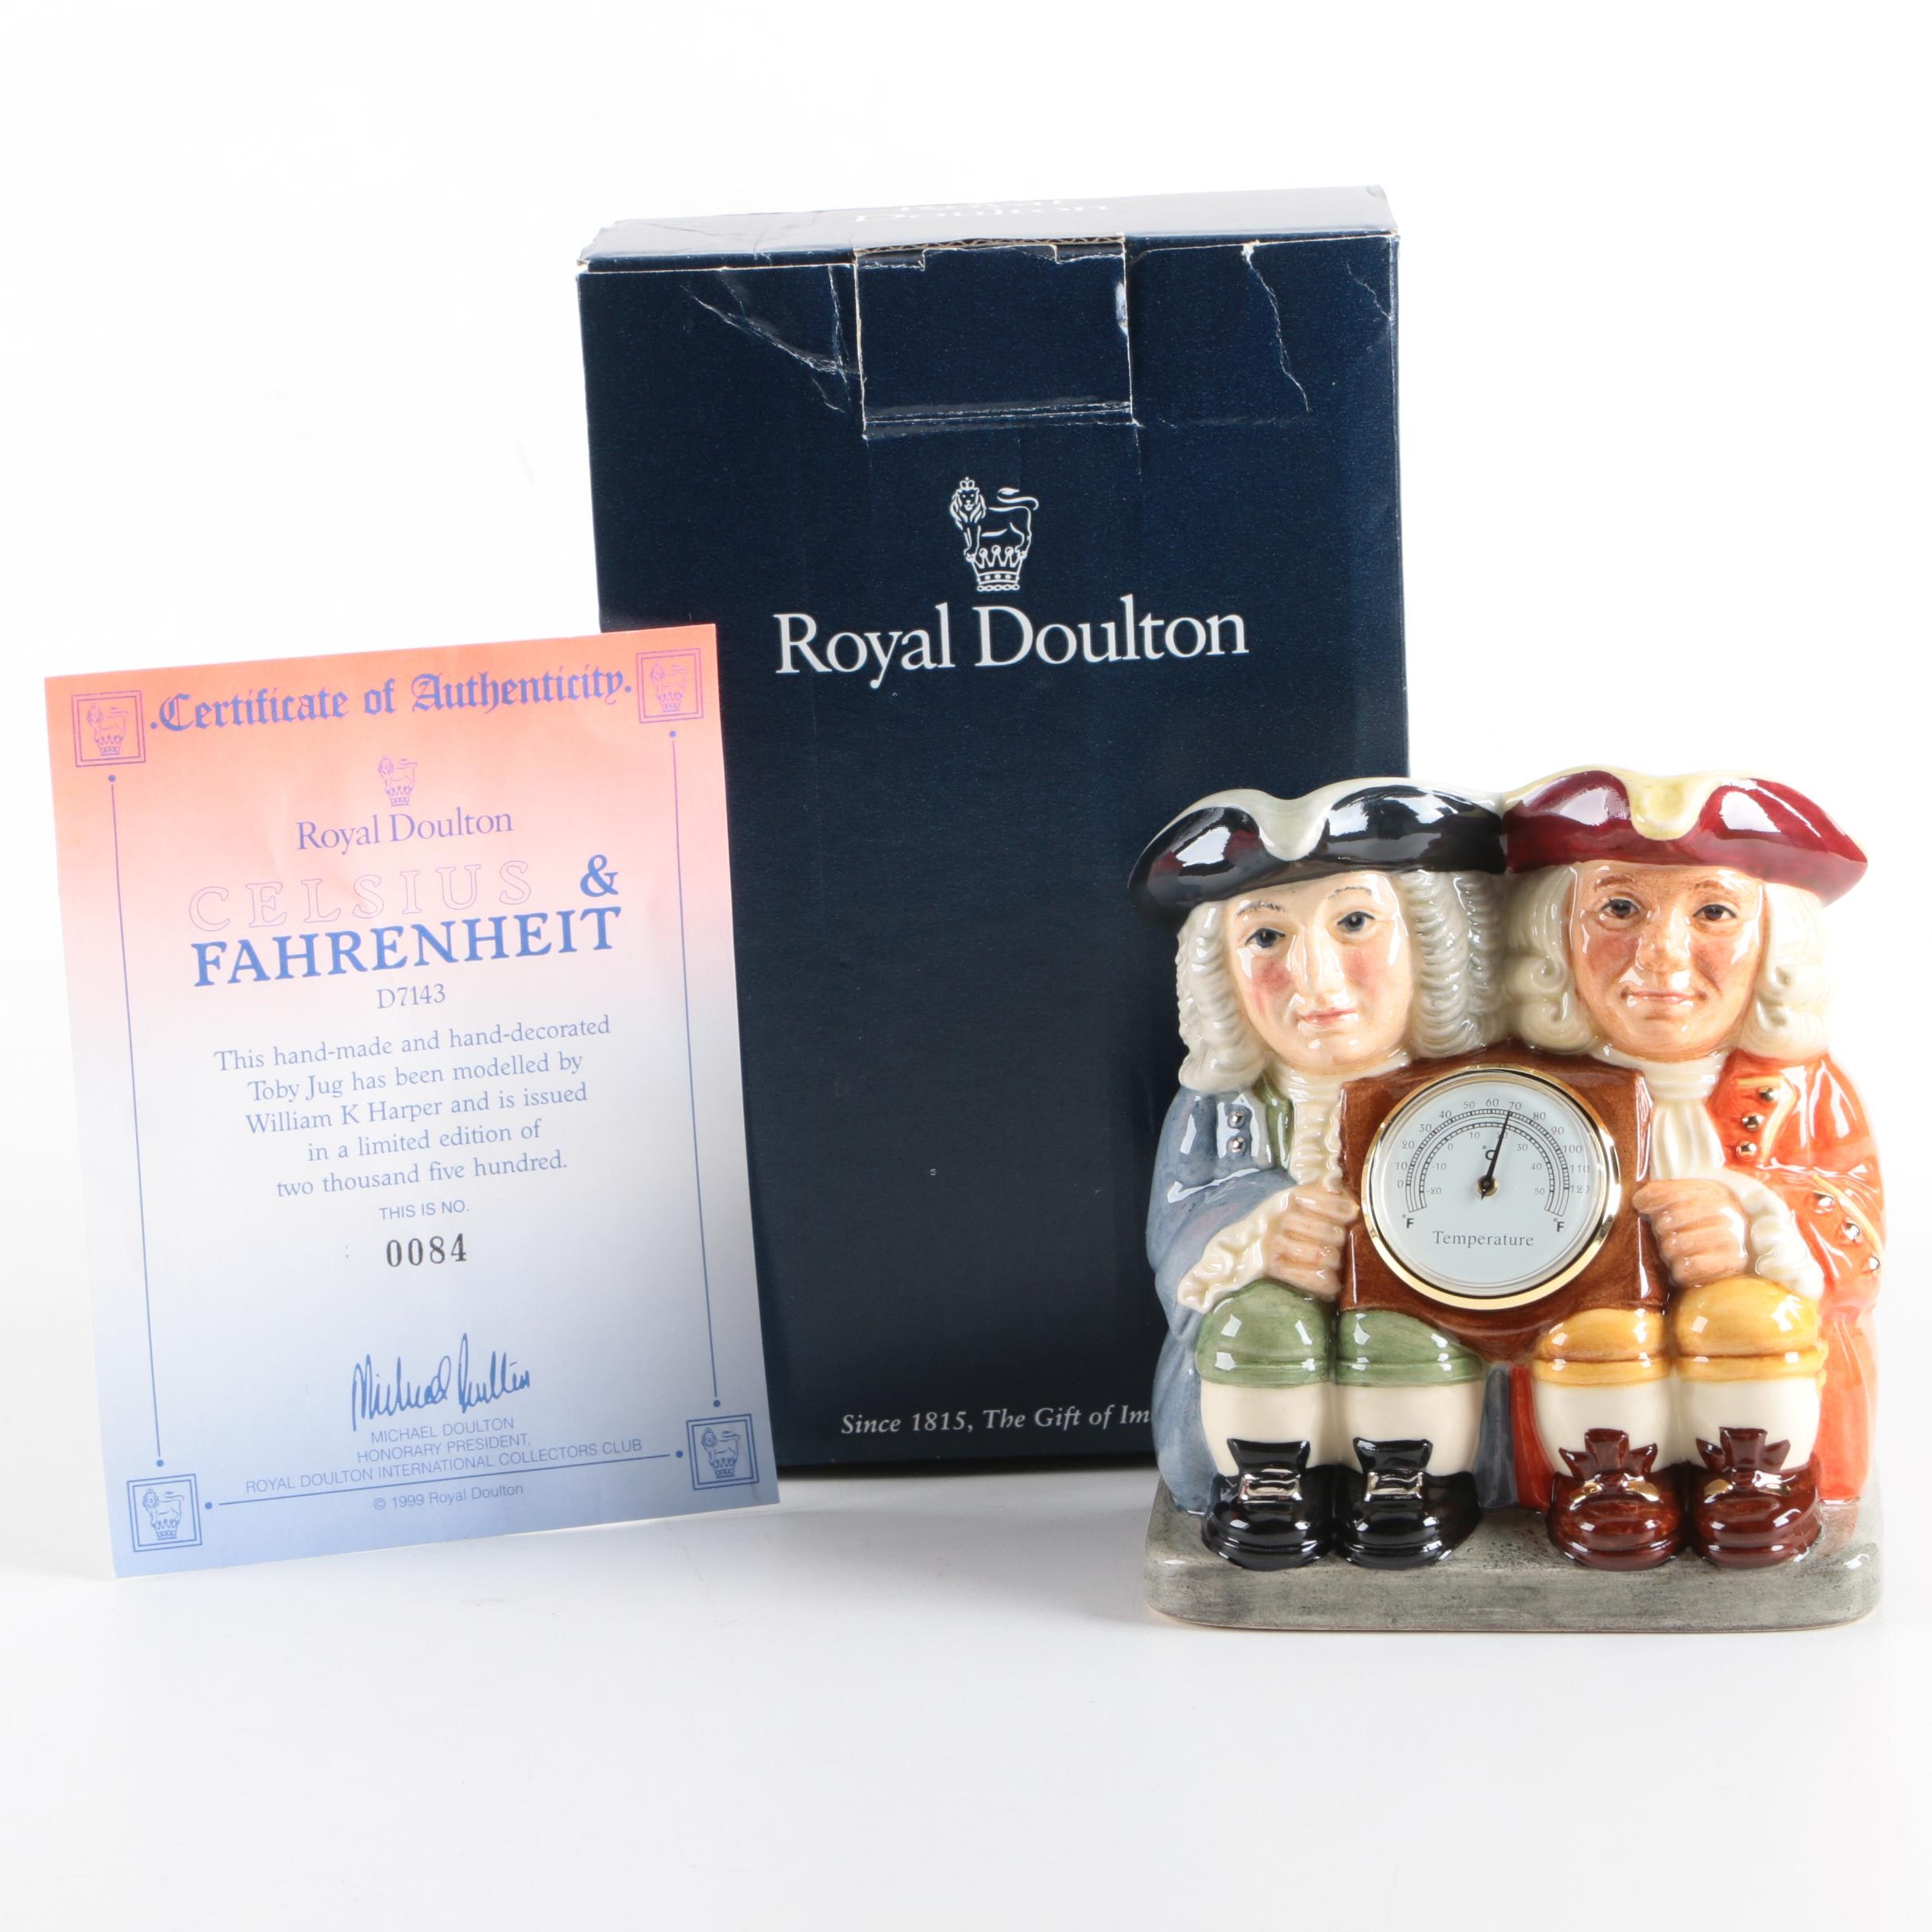 """Royal Doulton Limited Edition """"Celsius and Fahrenheit"""" Toby Jug With Thermometer"""